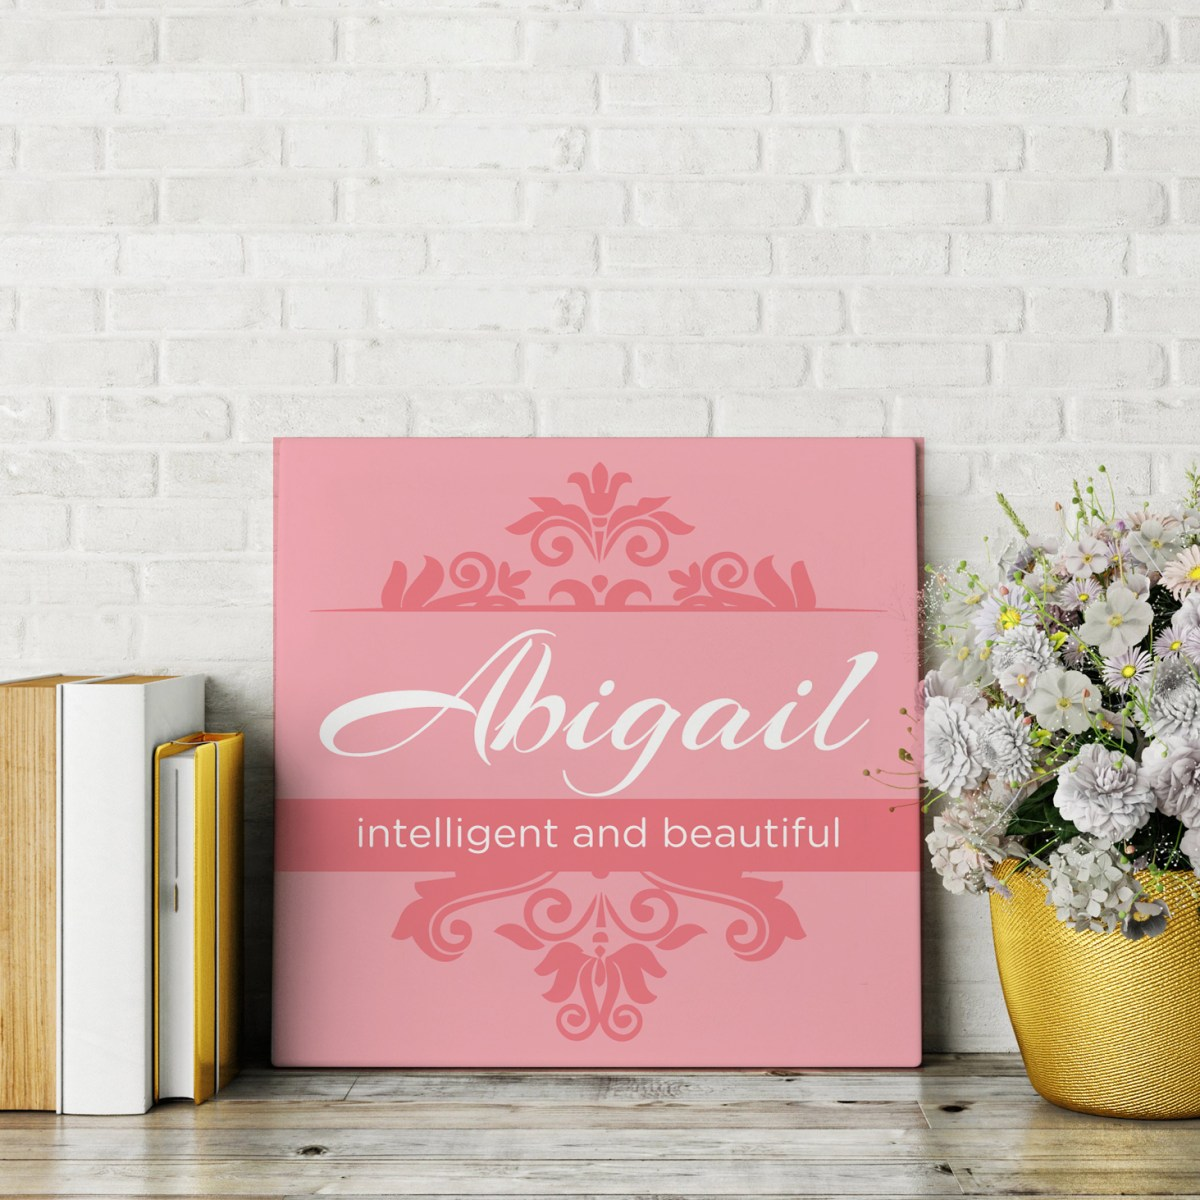 personalized name canvas with name and it's meaning